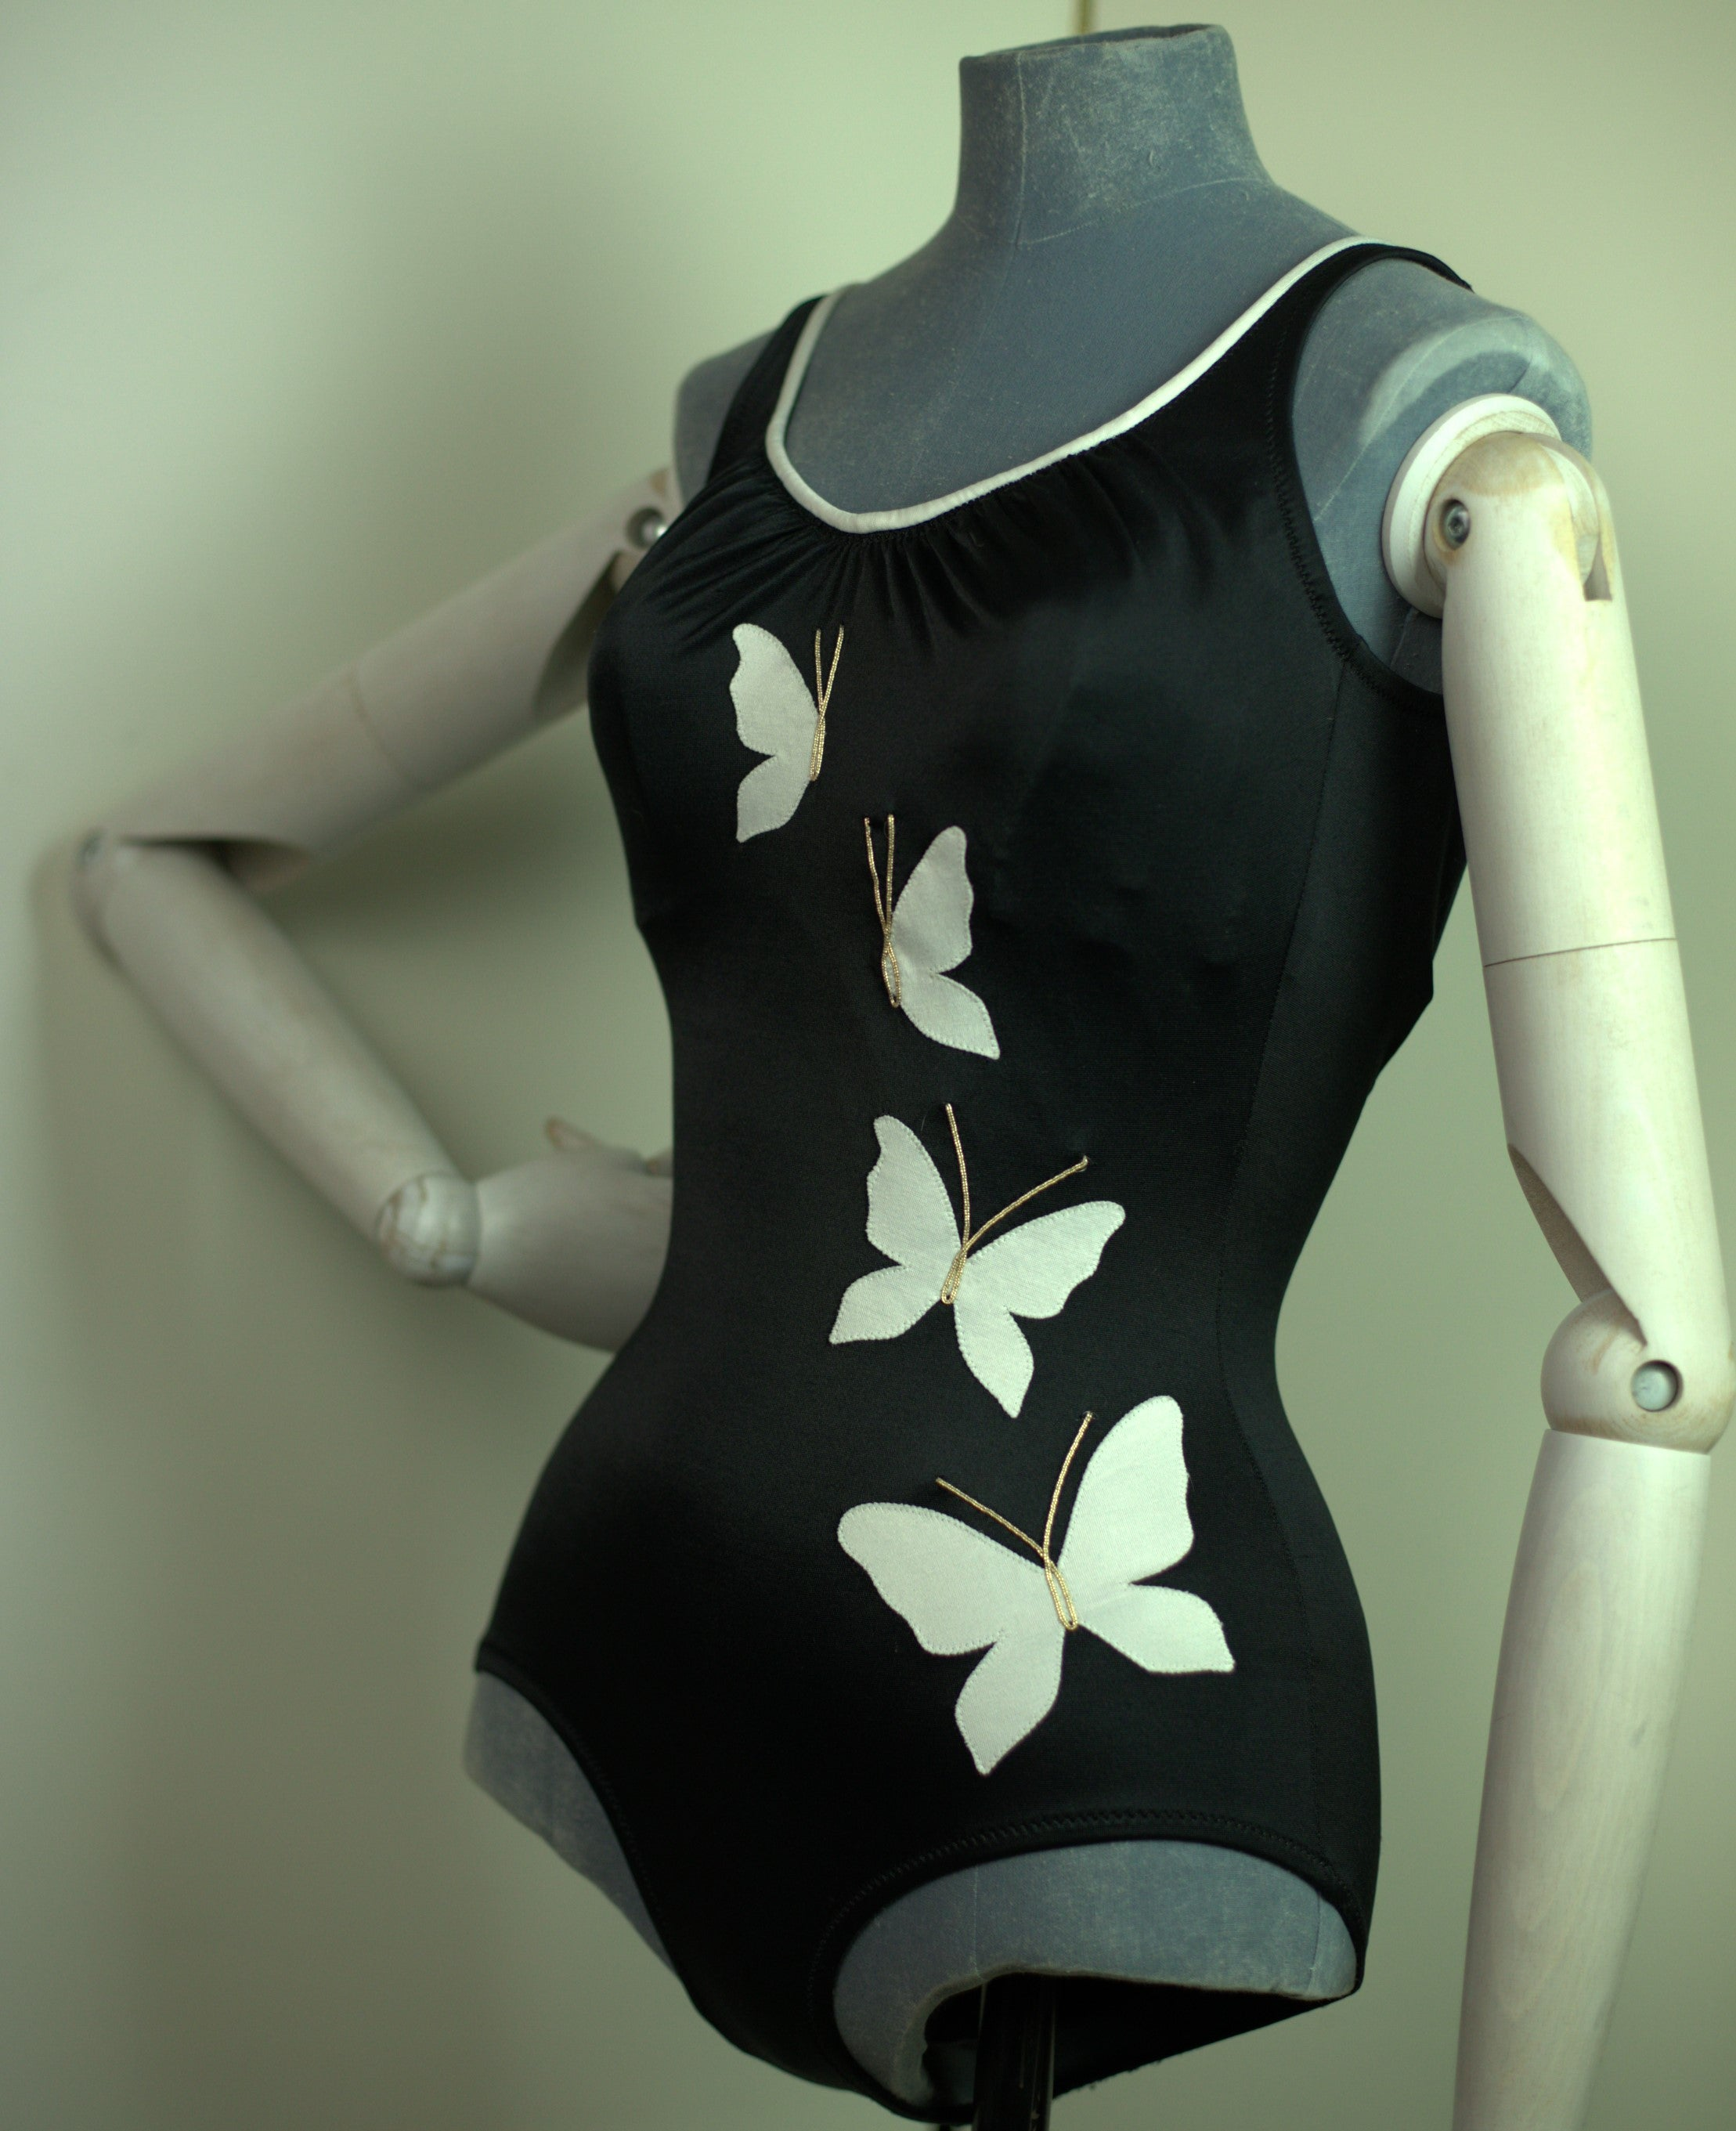 Vintage Novelty 1960s Deweese swimsuit.